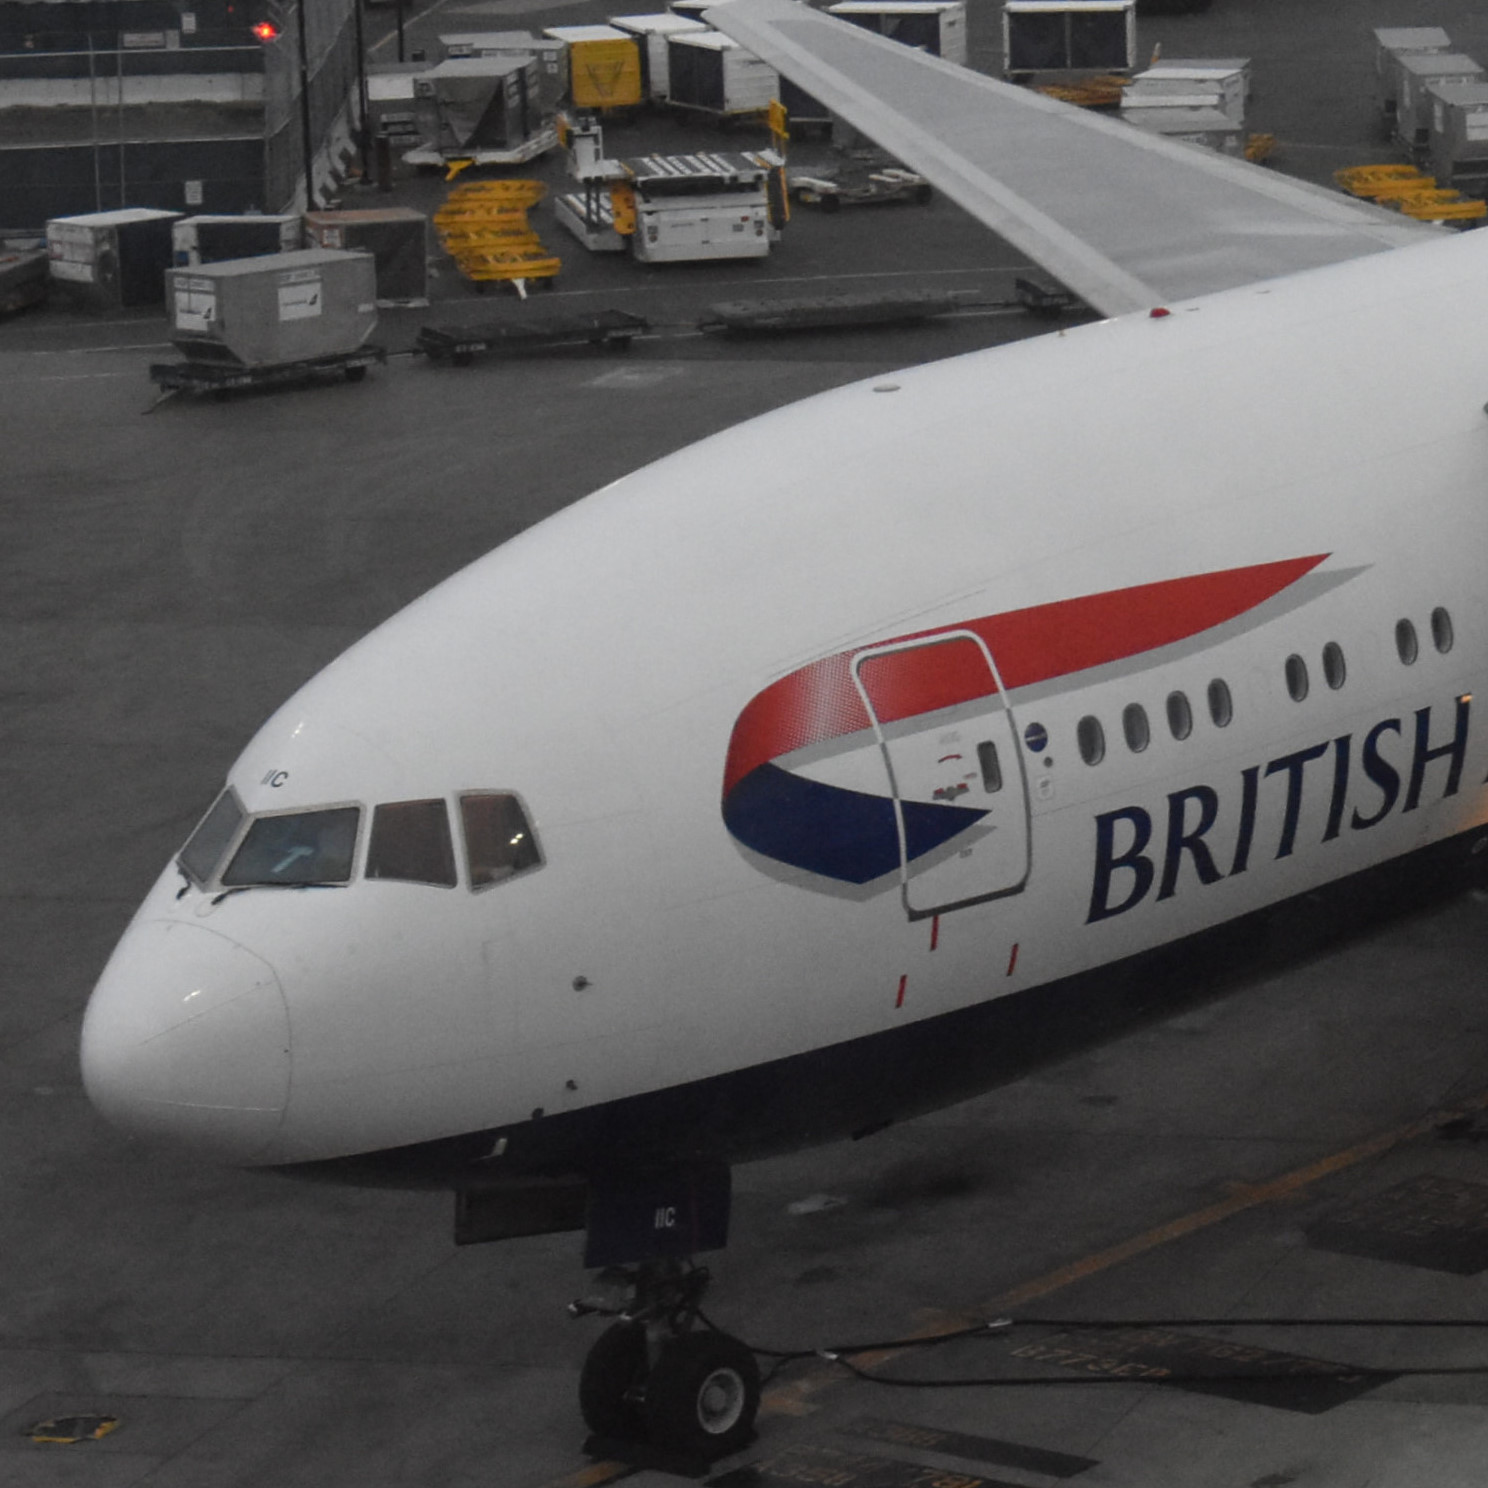 My British Airways Boeing 777, waiting on the stand at Terminal 5 in Boston, ready to take me back to London. I wonder when I'll fly again?